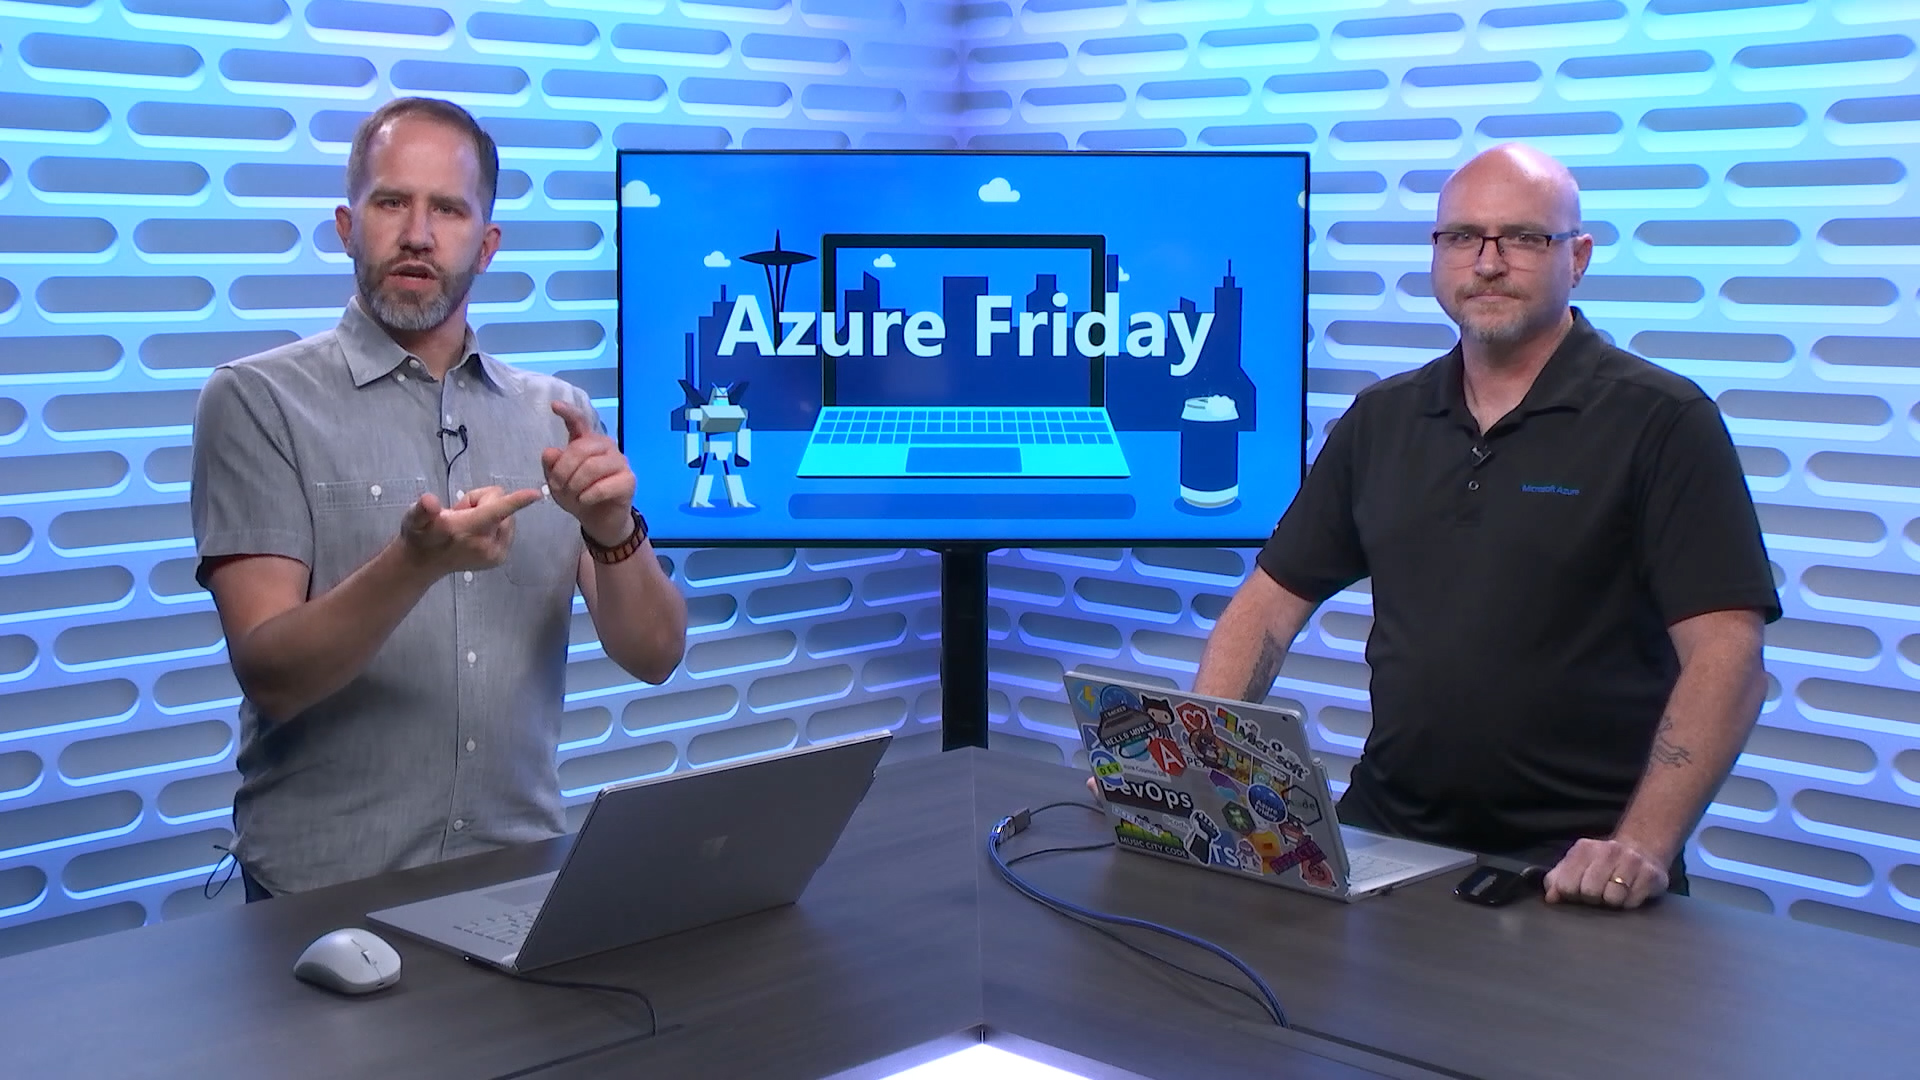 Go serverless: Enterprise integration with Azure Logic Apps